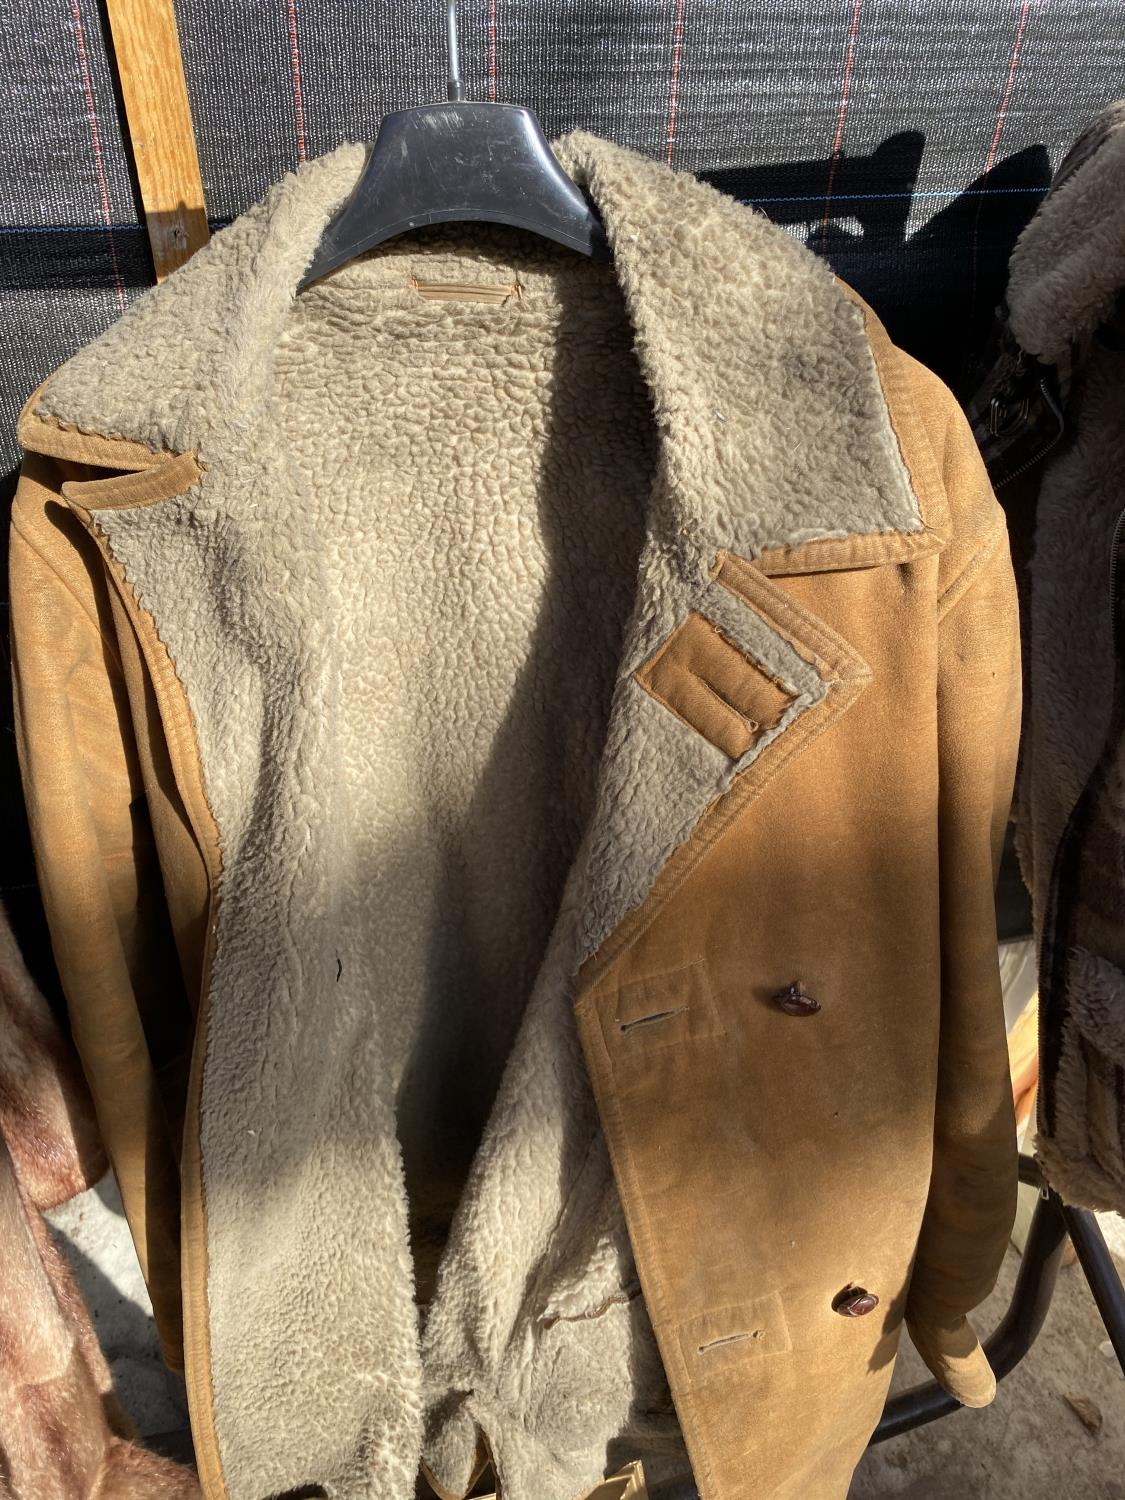 A GROUP OF FOUR COATS AND JACKETS TO INCLUDE A SHEEP SKIN COAT ETC - Image 6 of 7